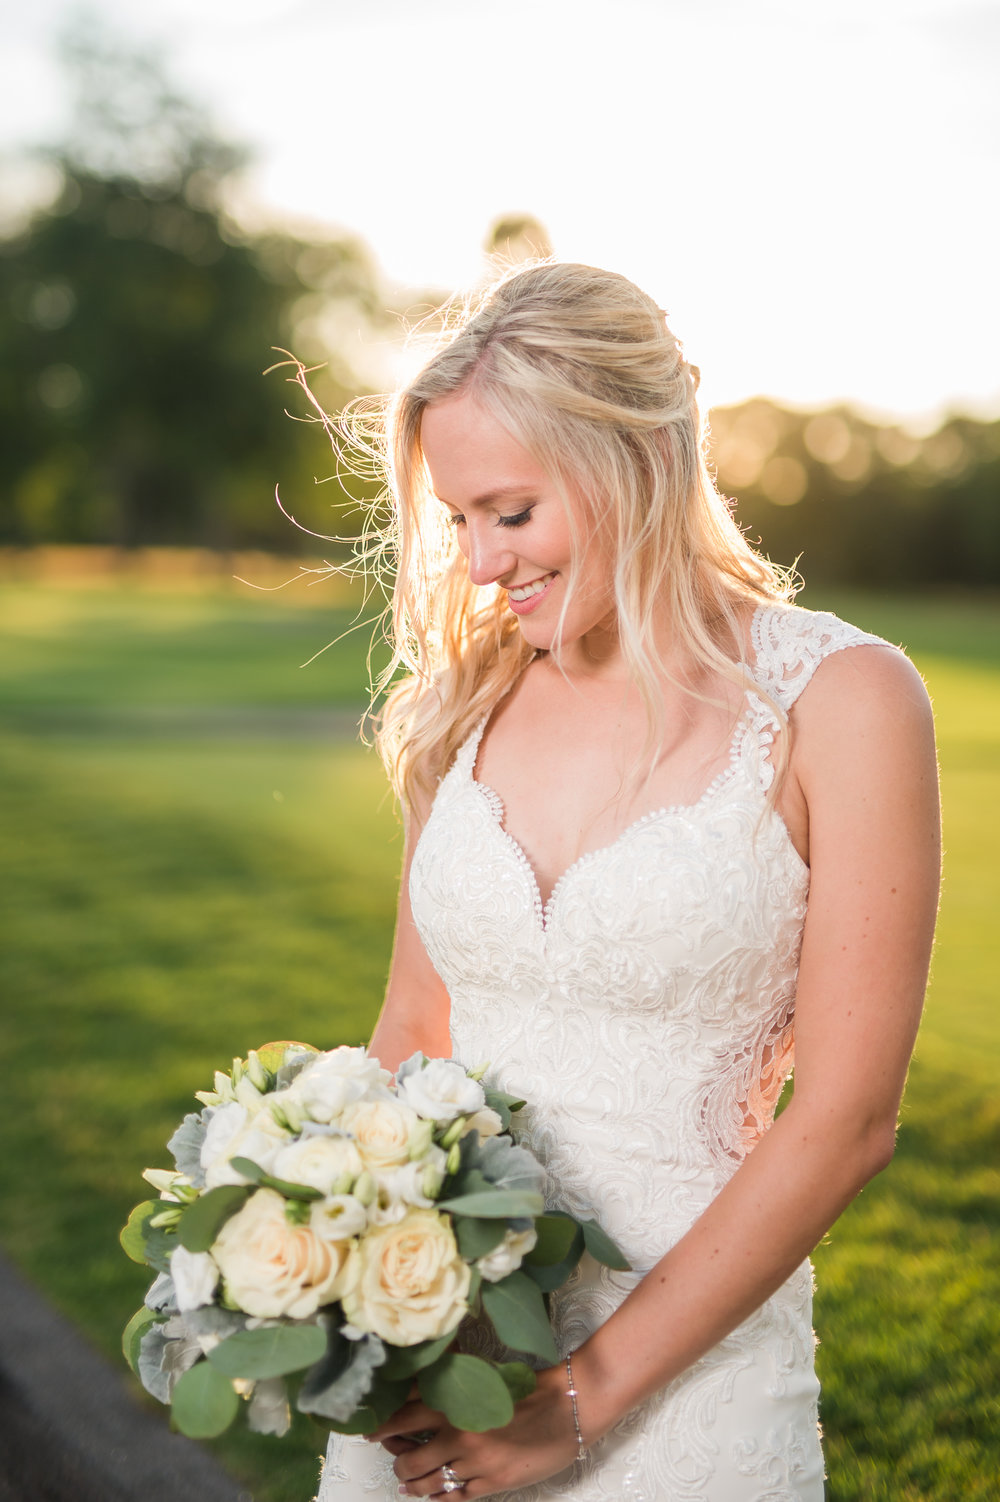 New Hampshire Bride Floral Bouquet | Mike Sears Photography